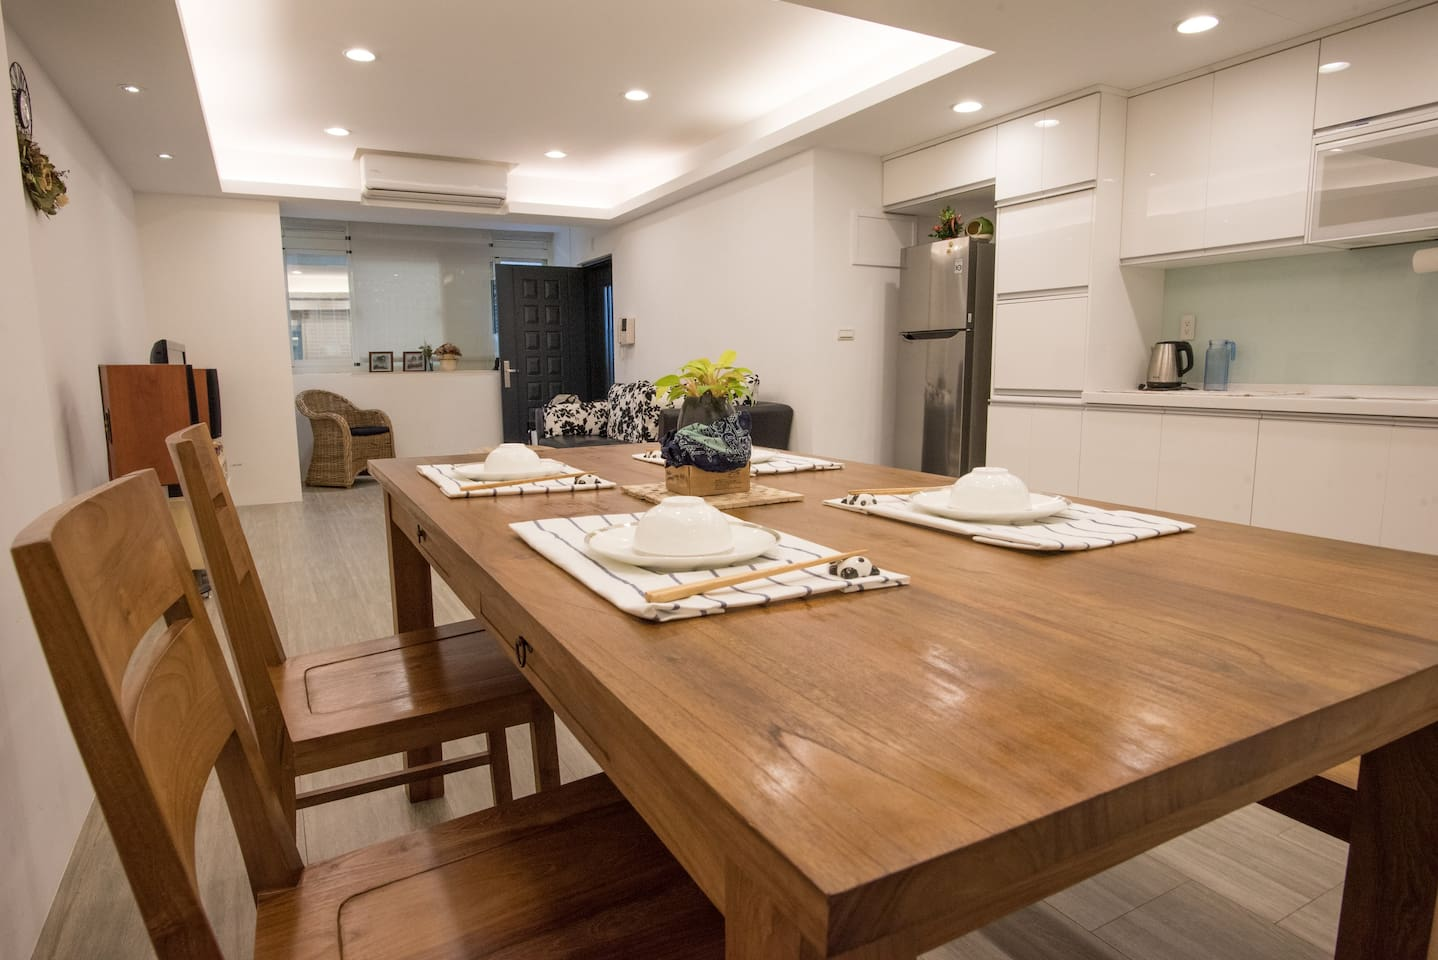 Large dining or working teak table.